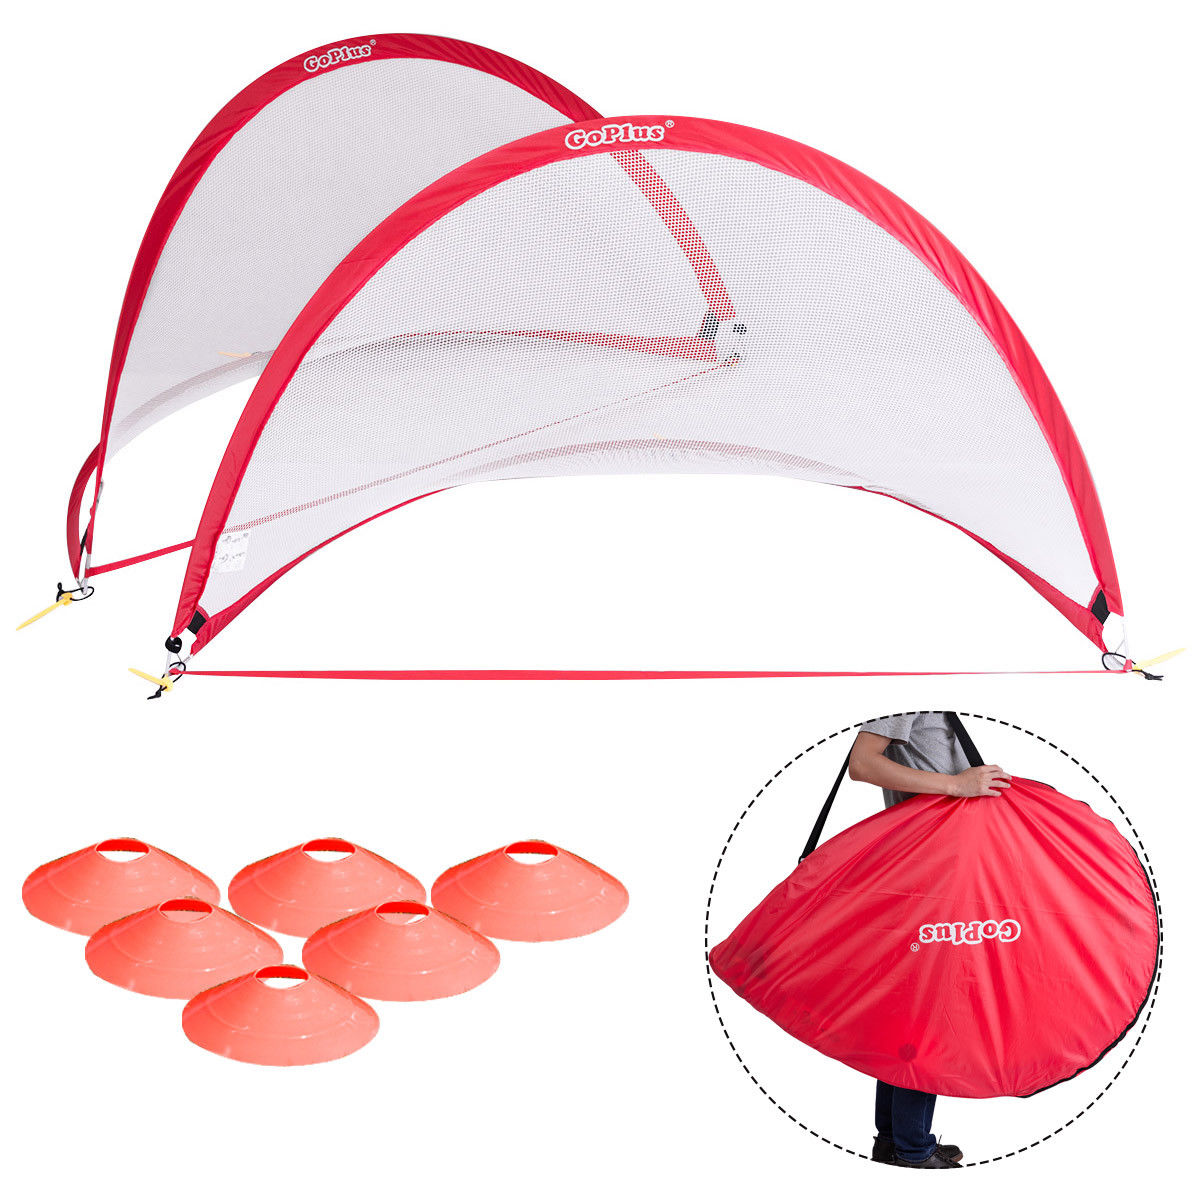 Goplus Set of 2 Portable 6' Pop-Up Soccer Goals Set For Backyard w Carrying Bag 6 Cones